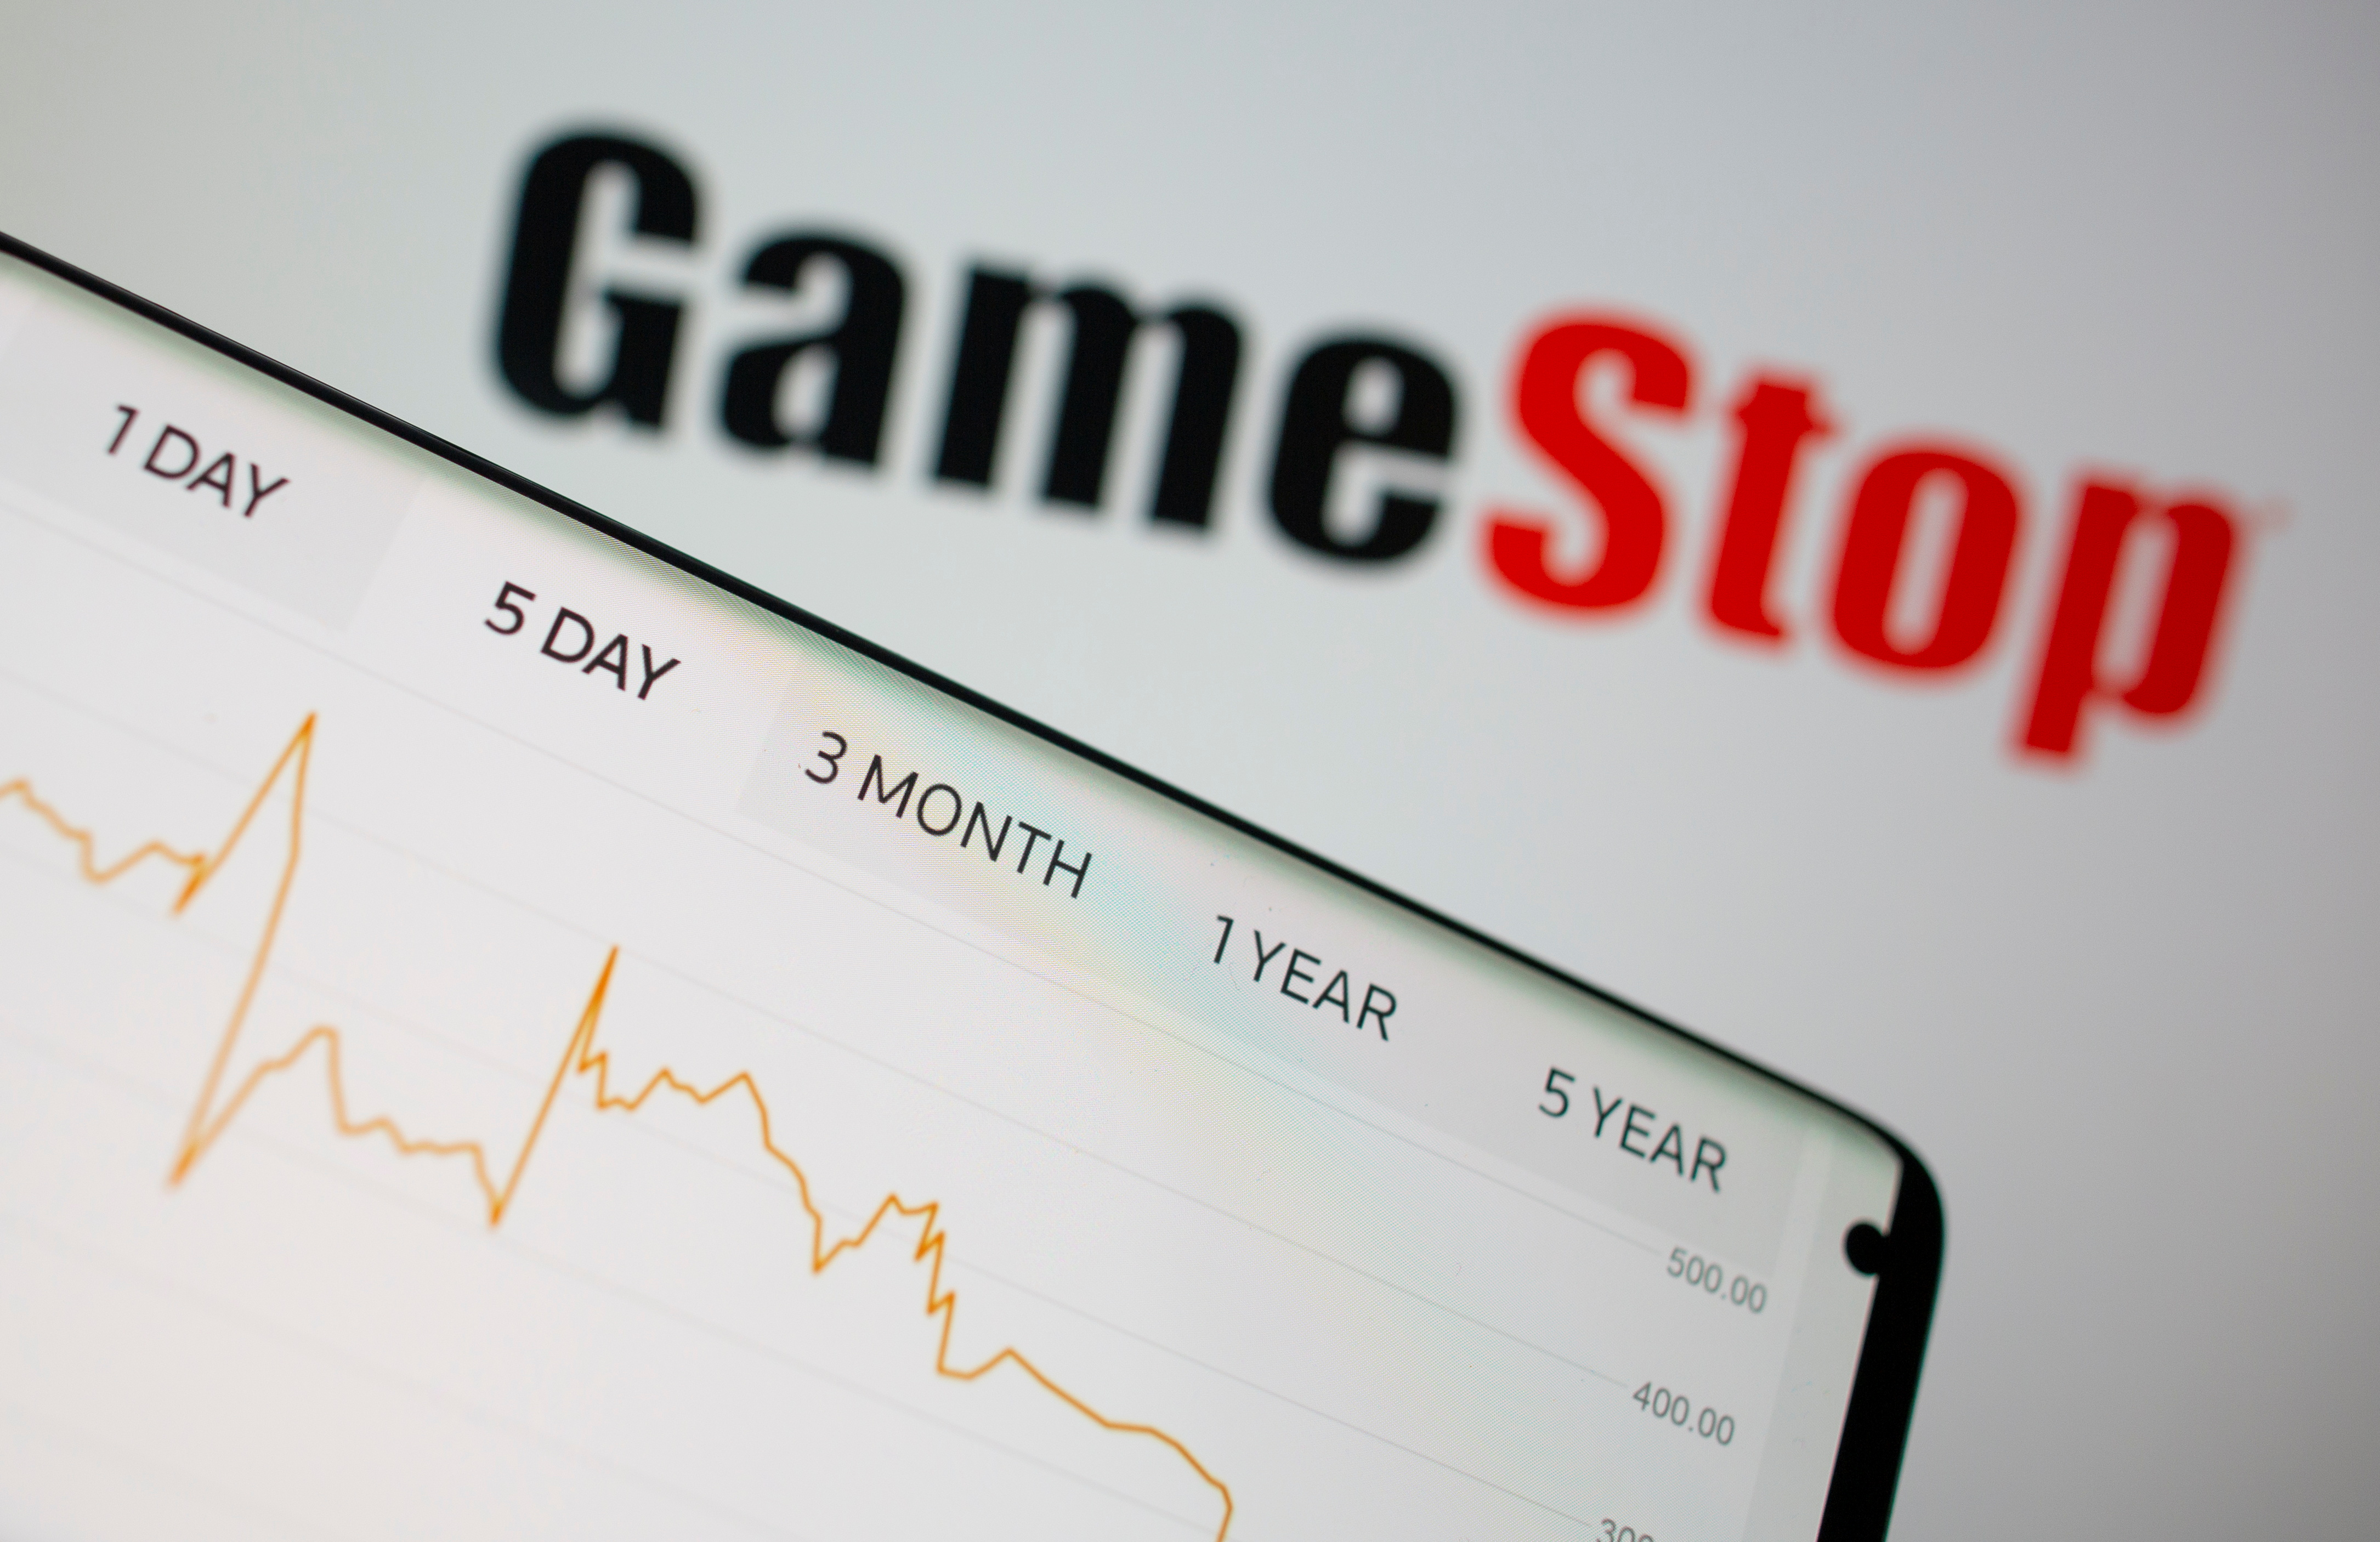 GameStop stock graph is seen in front of the company's logo in this illustration taken February 2, 2021. REUTERS/Dado Ruvic/Illustration